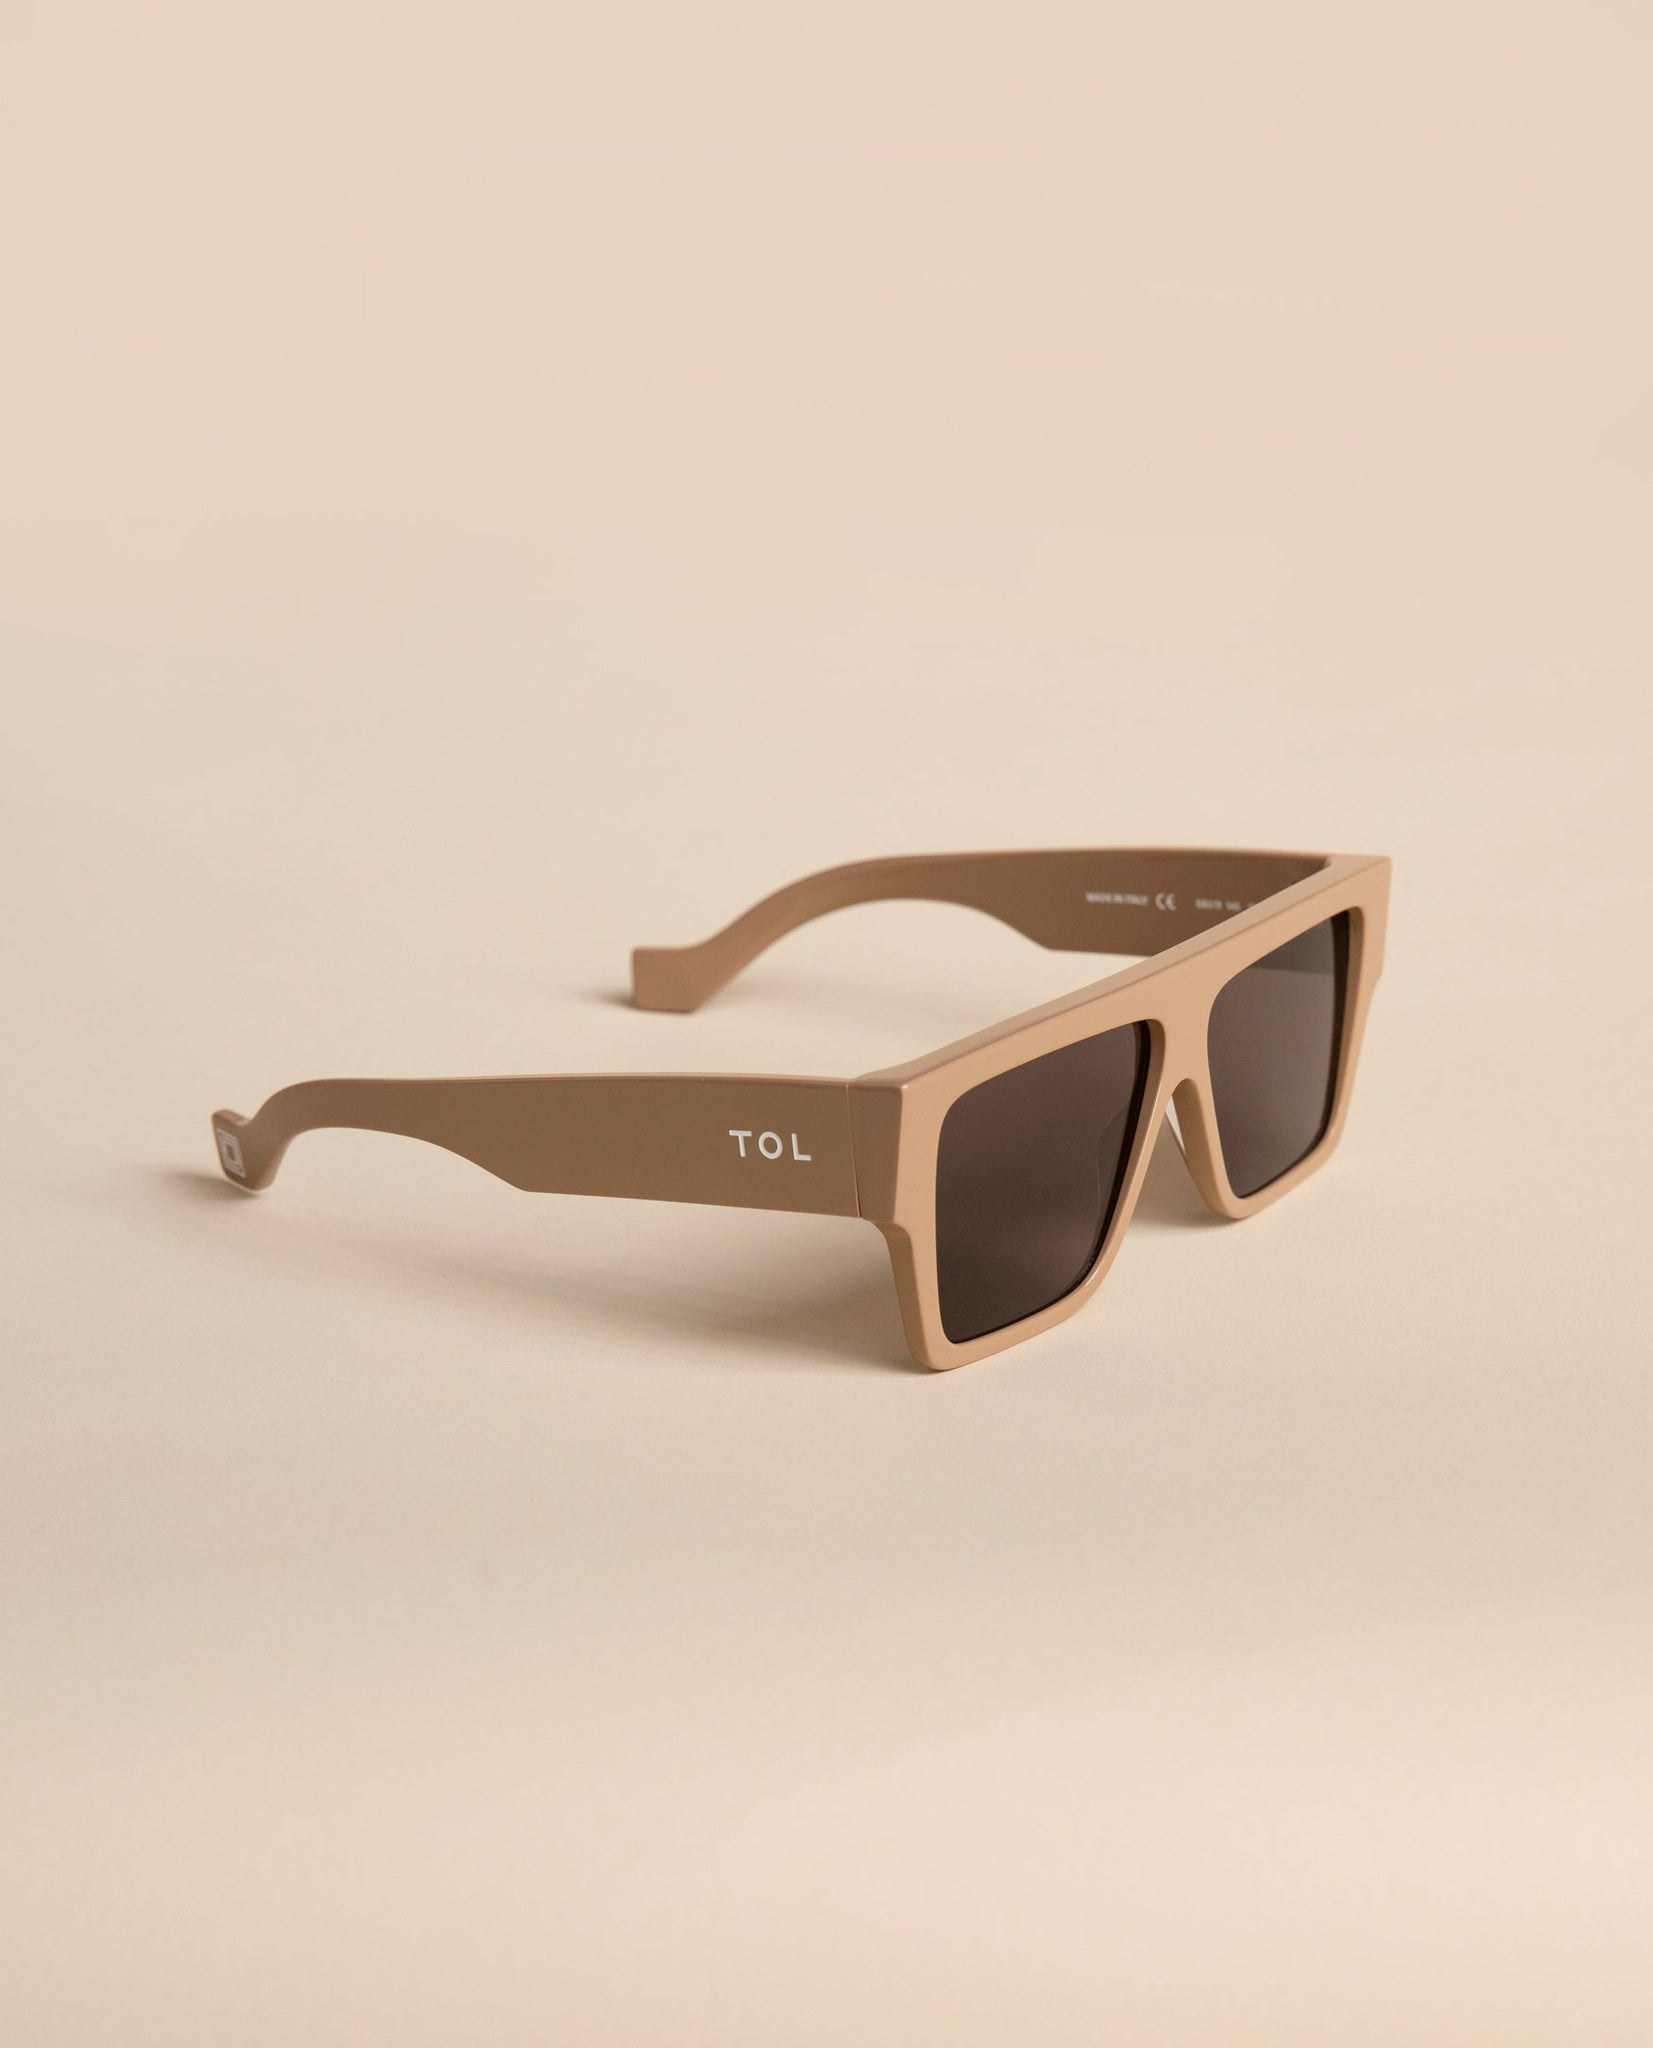 TOL EYEWEAR LAZER SUNGLASSES IN NUDE - BEYOND STUDIOS